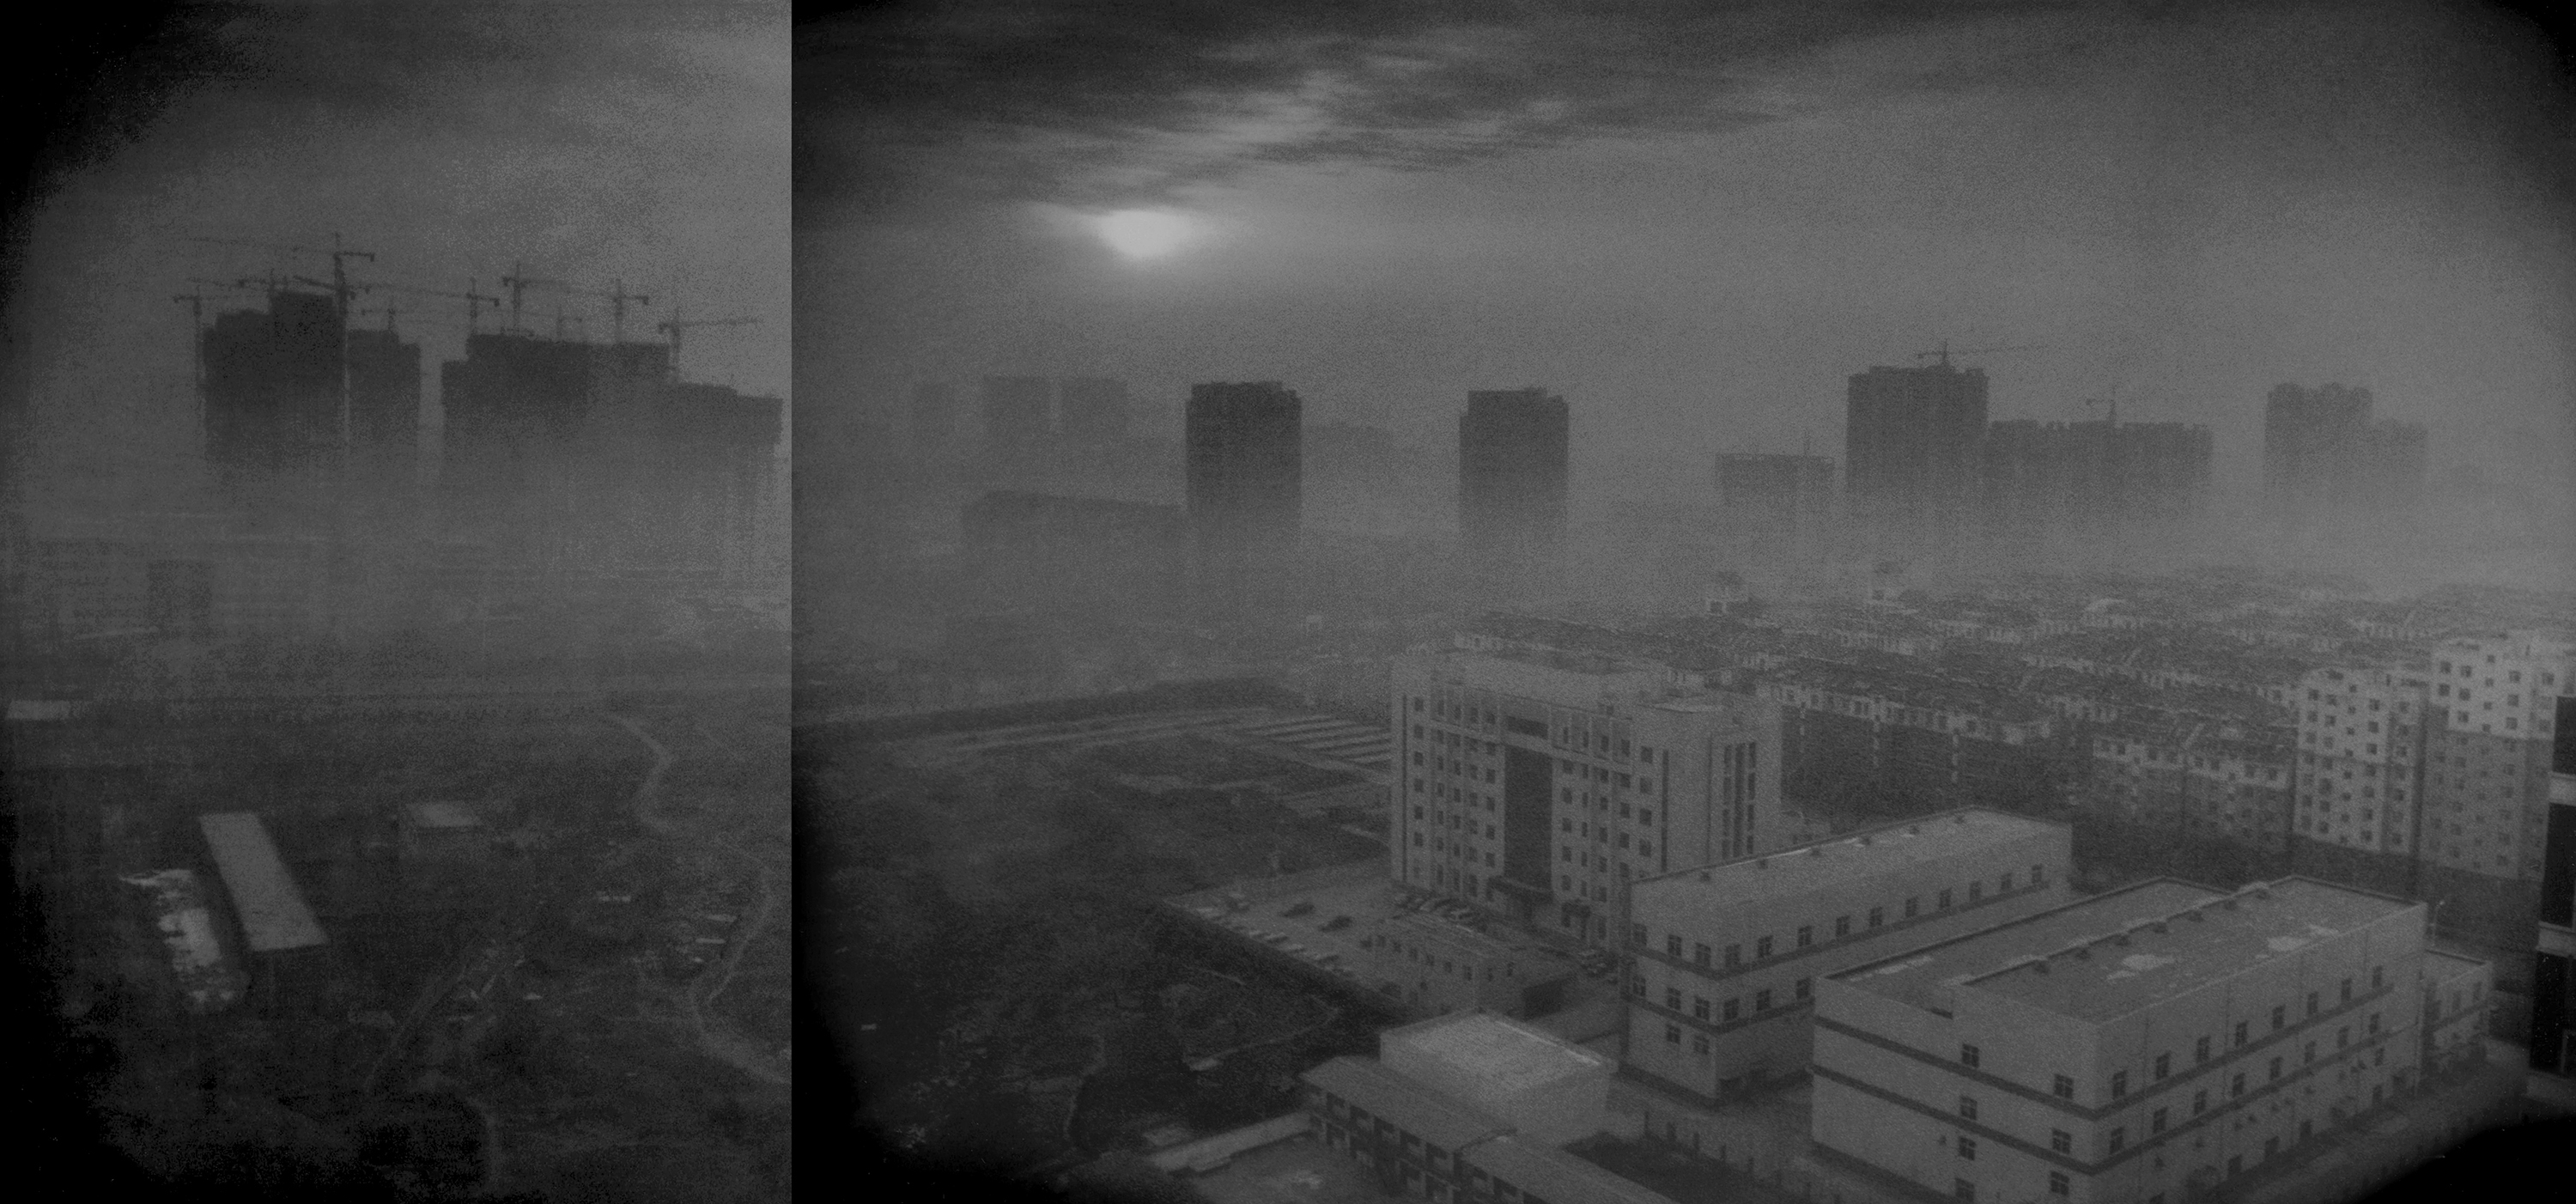 Xingtai China  city images : Smog envelopes Xingtai, China, at dawn in southern Hebei province.